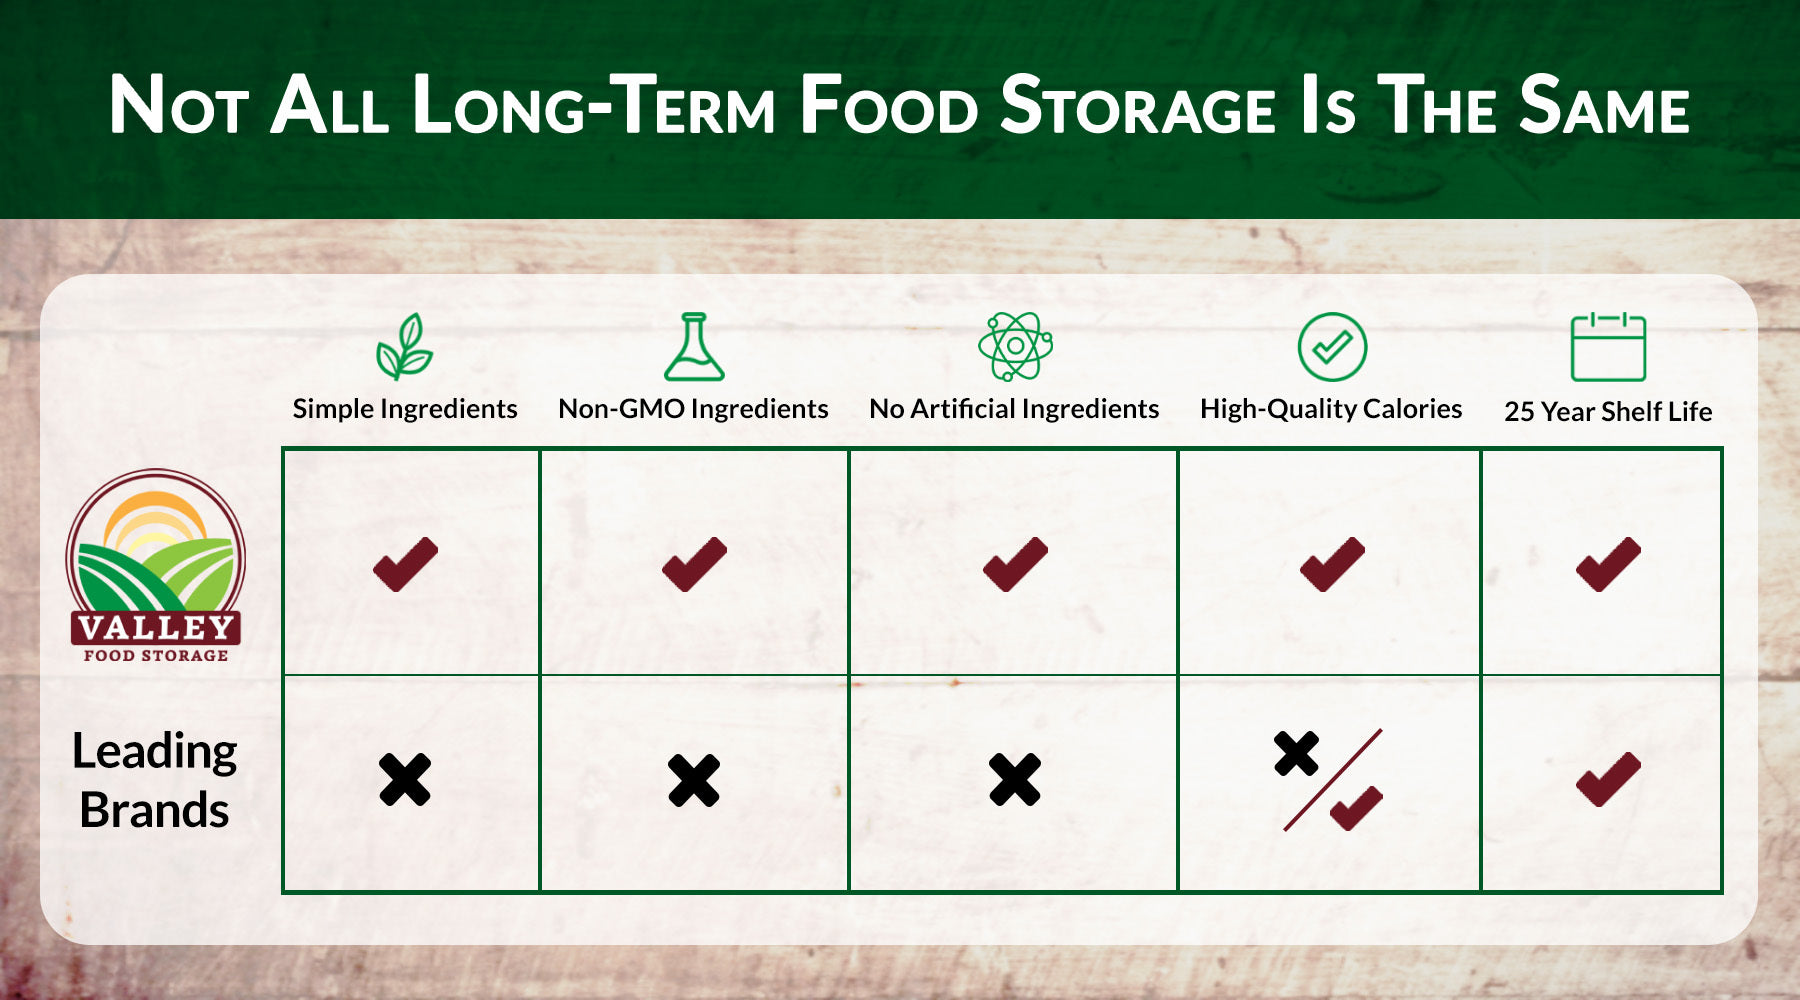 valley food storage vs. other leading long term food storage brands